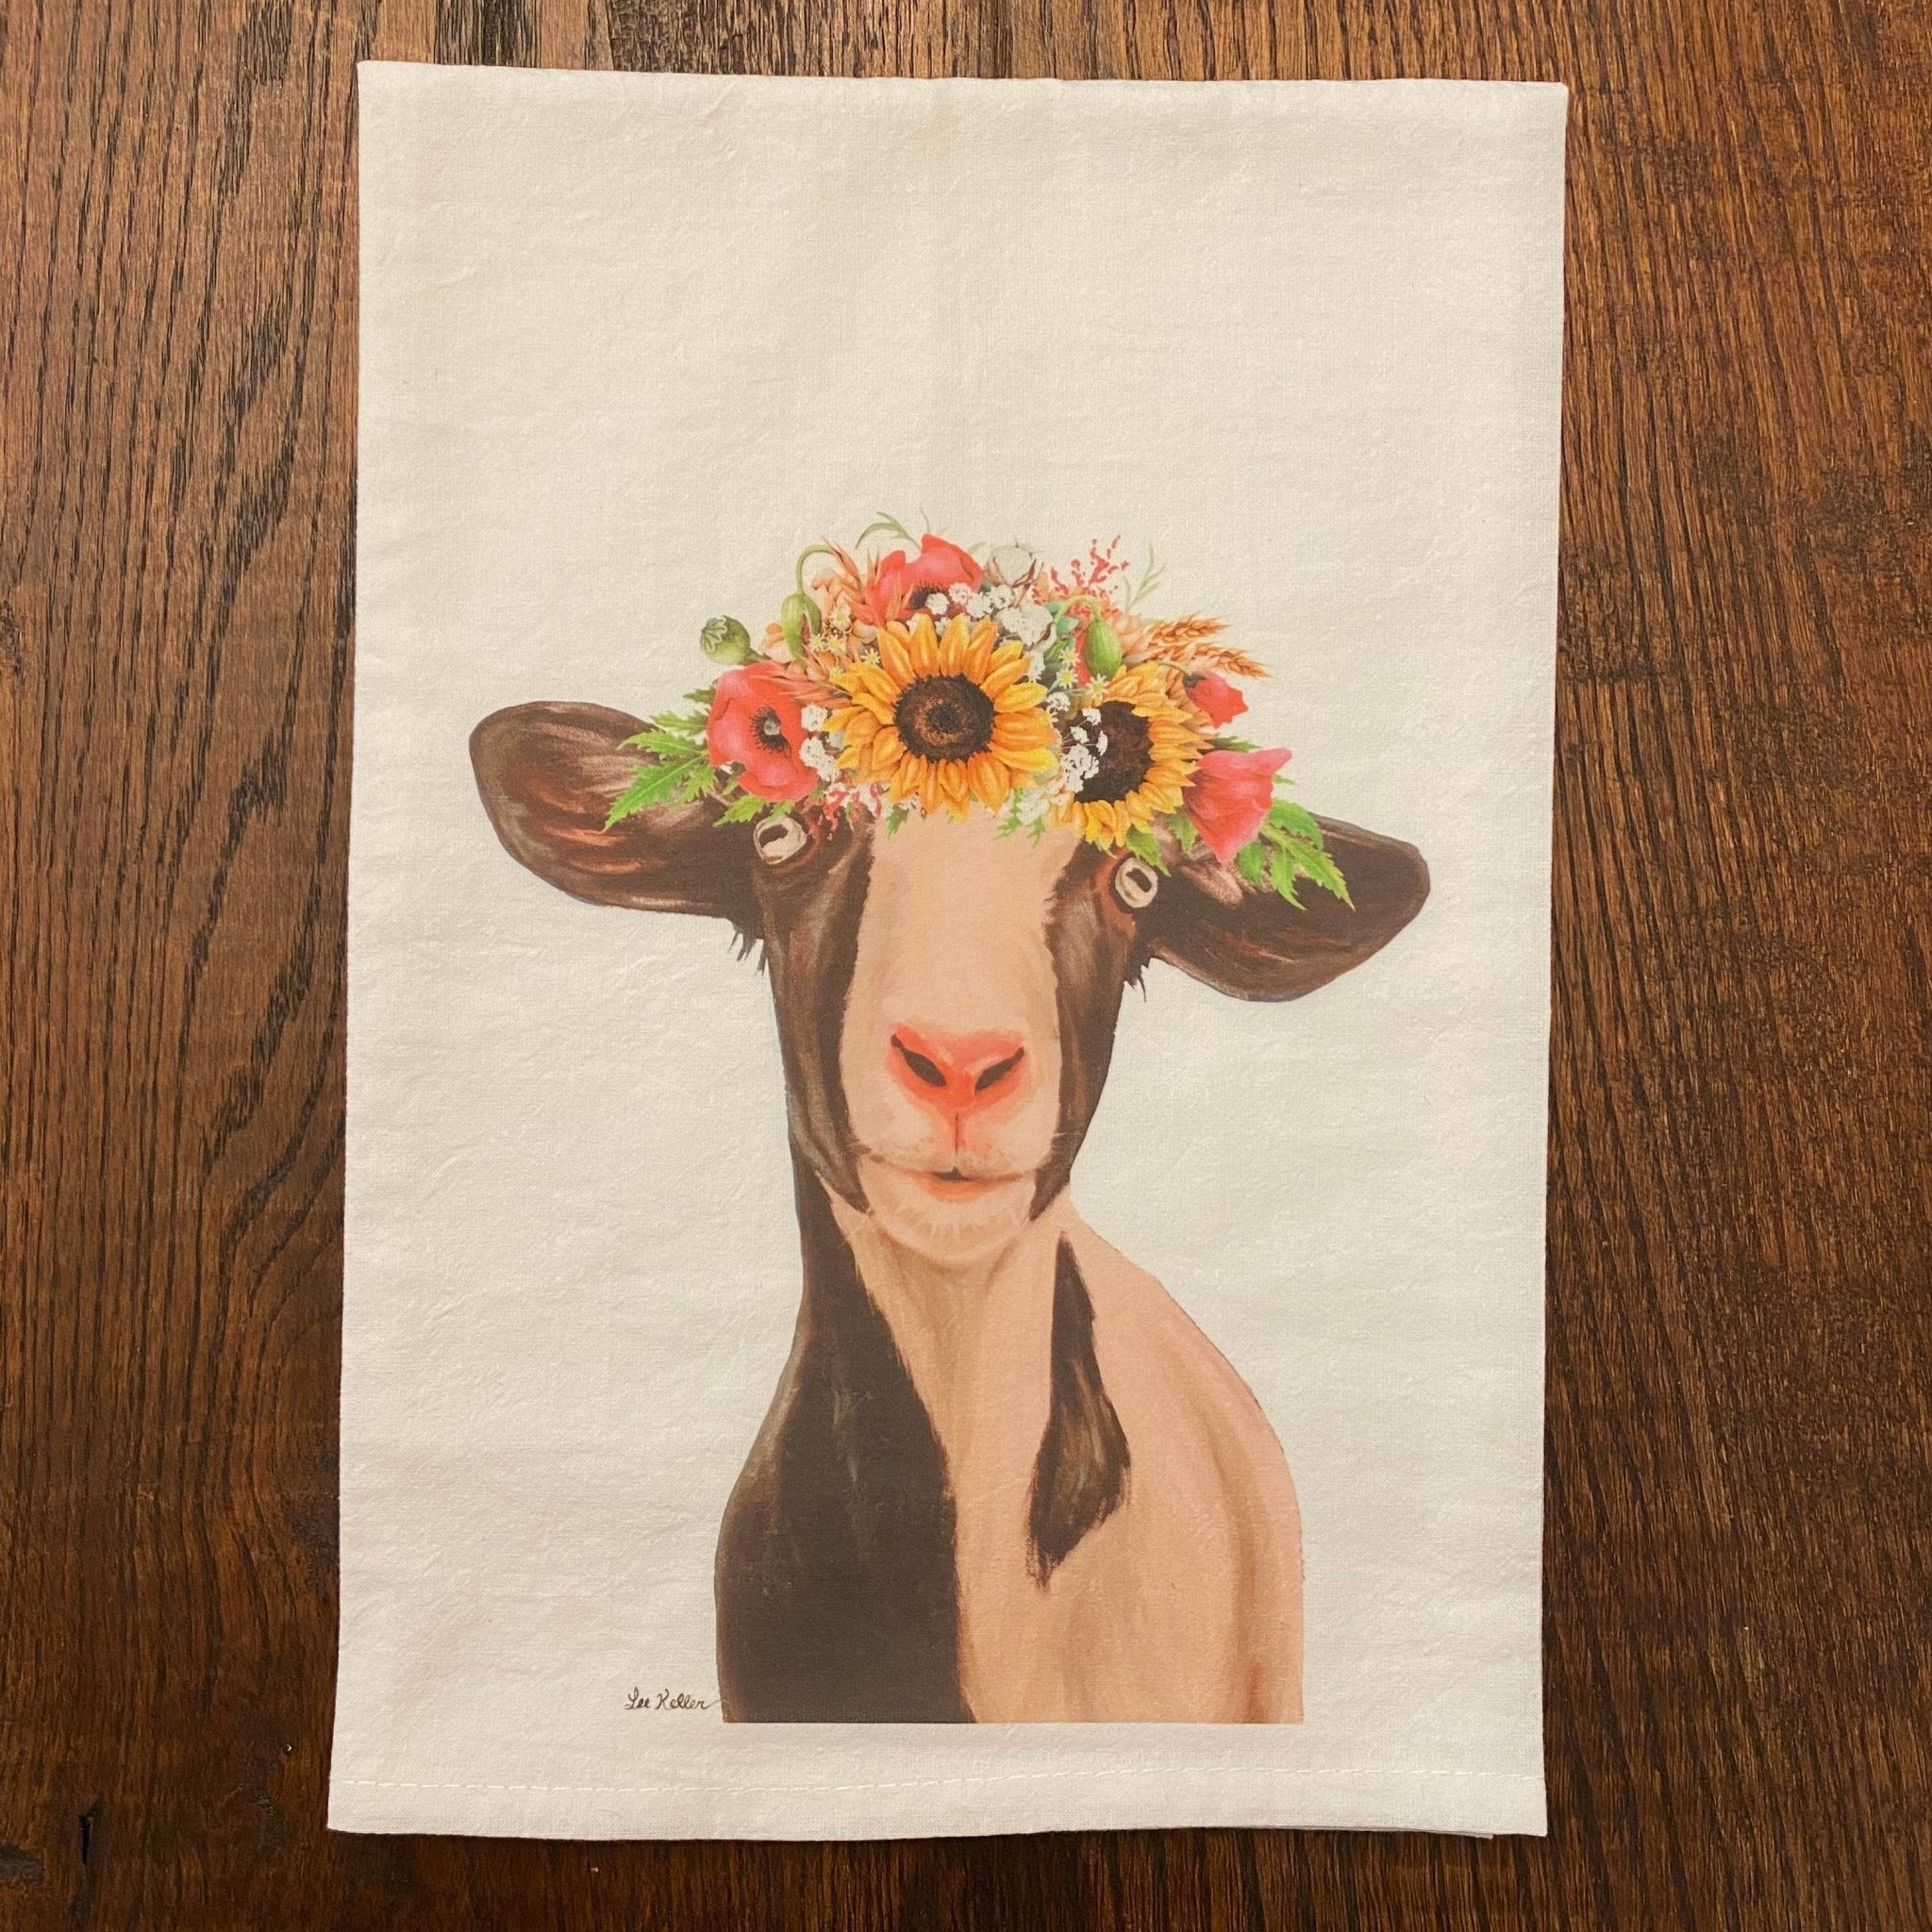 Goat with Sunflowers Flour Sack Tea Towel - Hippie Hound Studios -Freehand Market